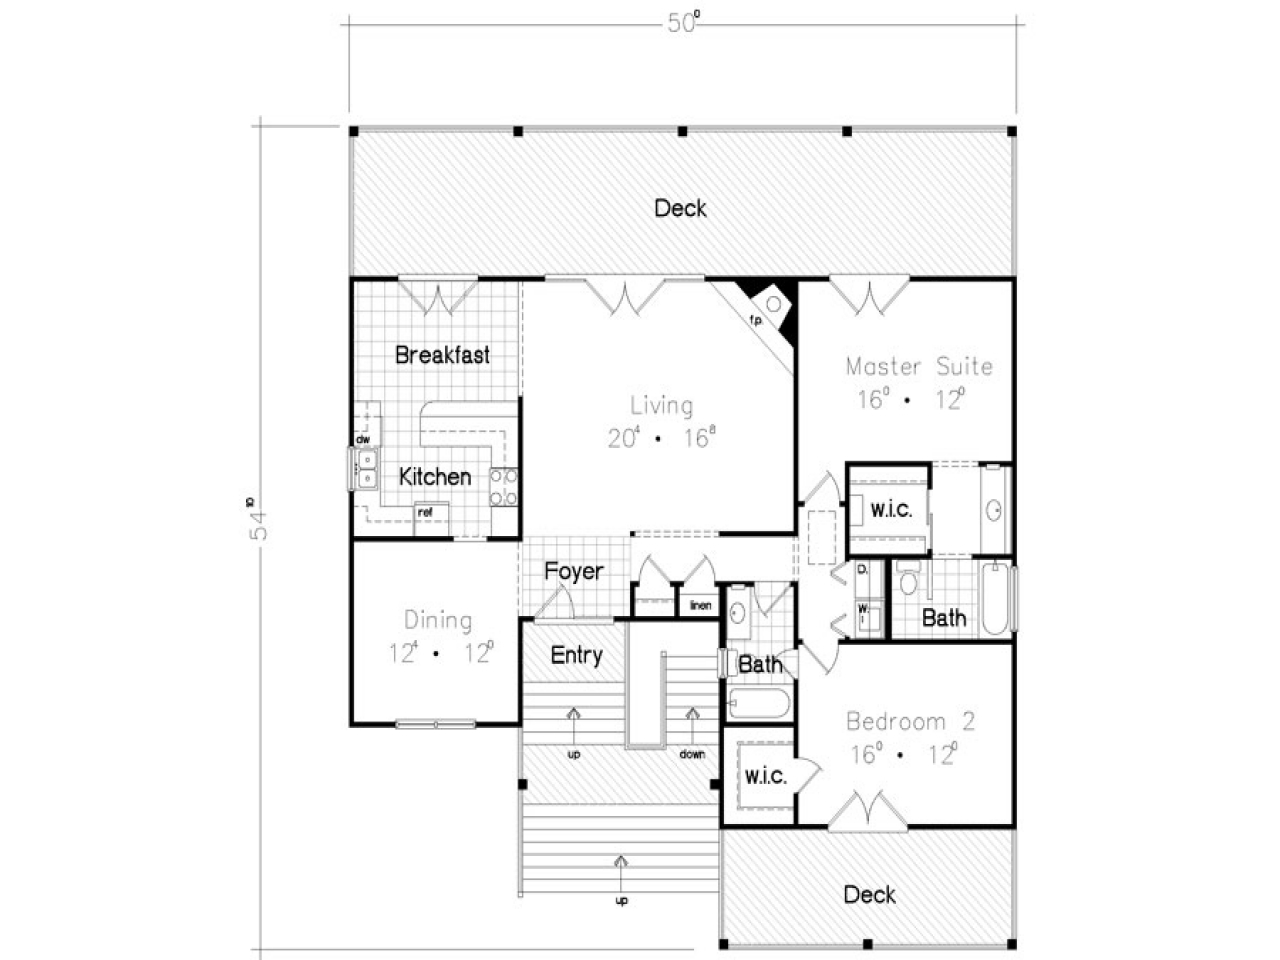 Private beach bungalows beach bungalow house floor plan for Bungalow floor plans free